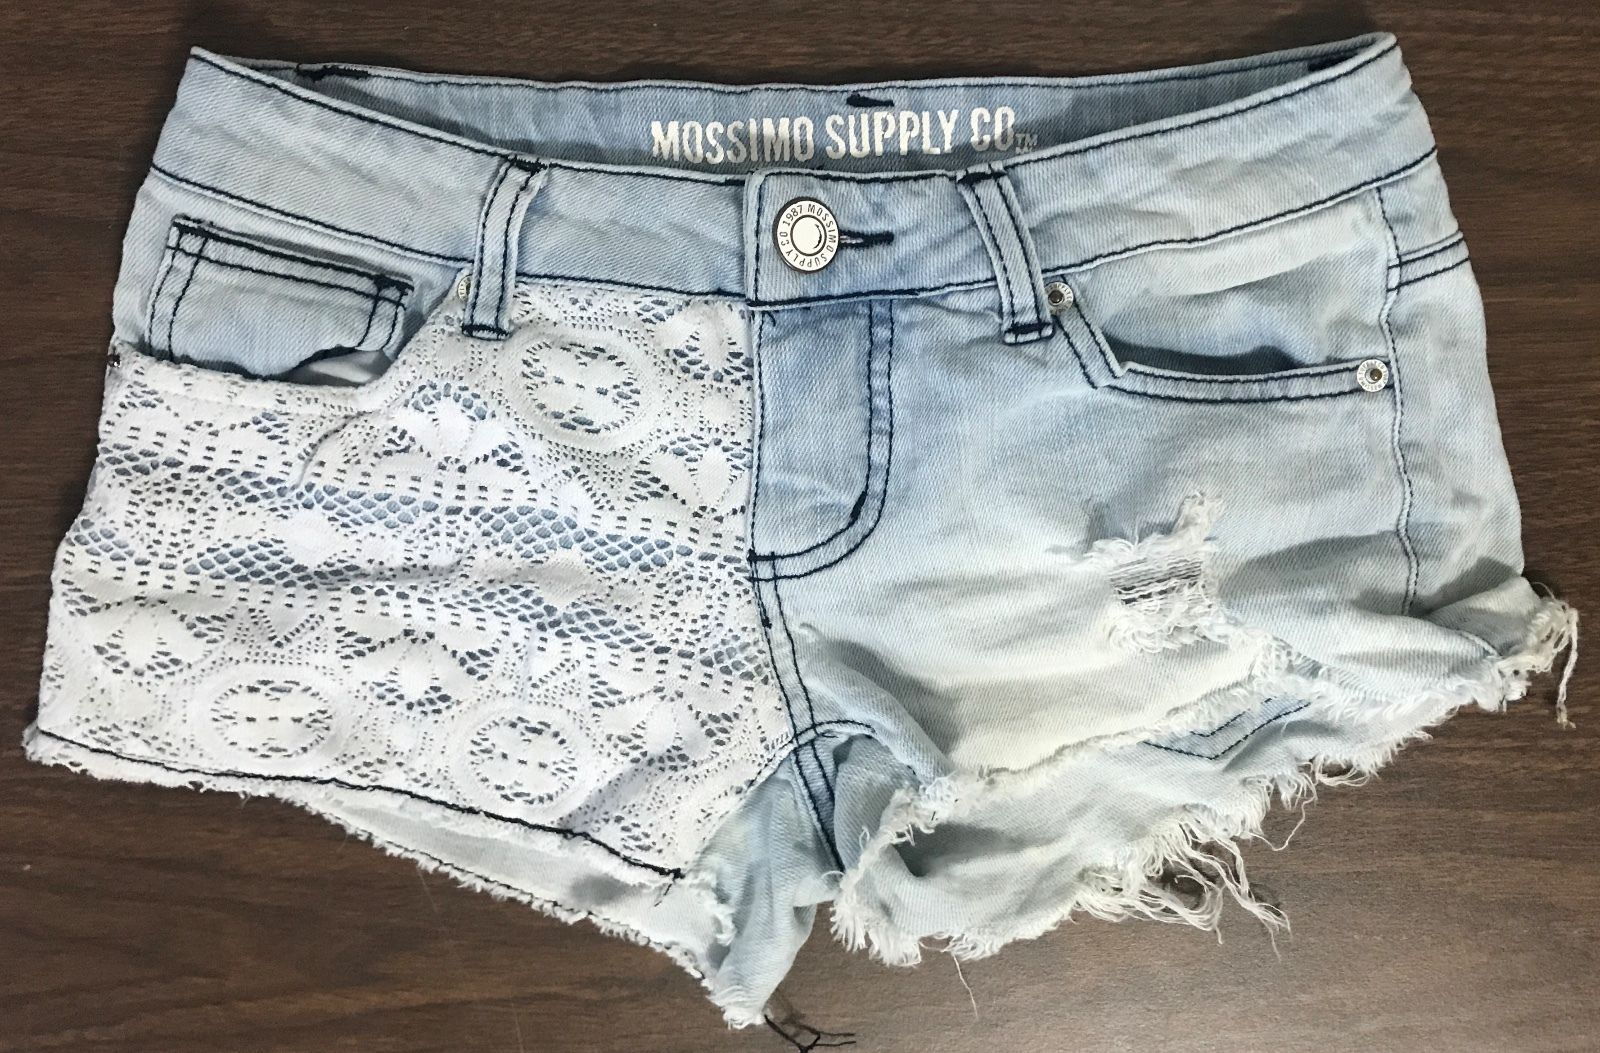 7a3bd6bb2 Mossimo Supply Co. Women's Jean Shorts Size and 50 similar items. 57